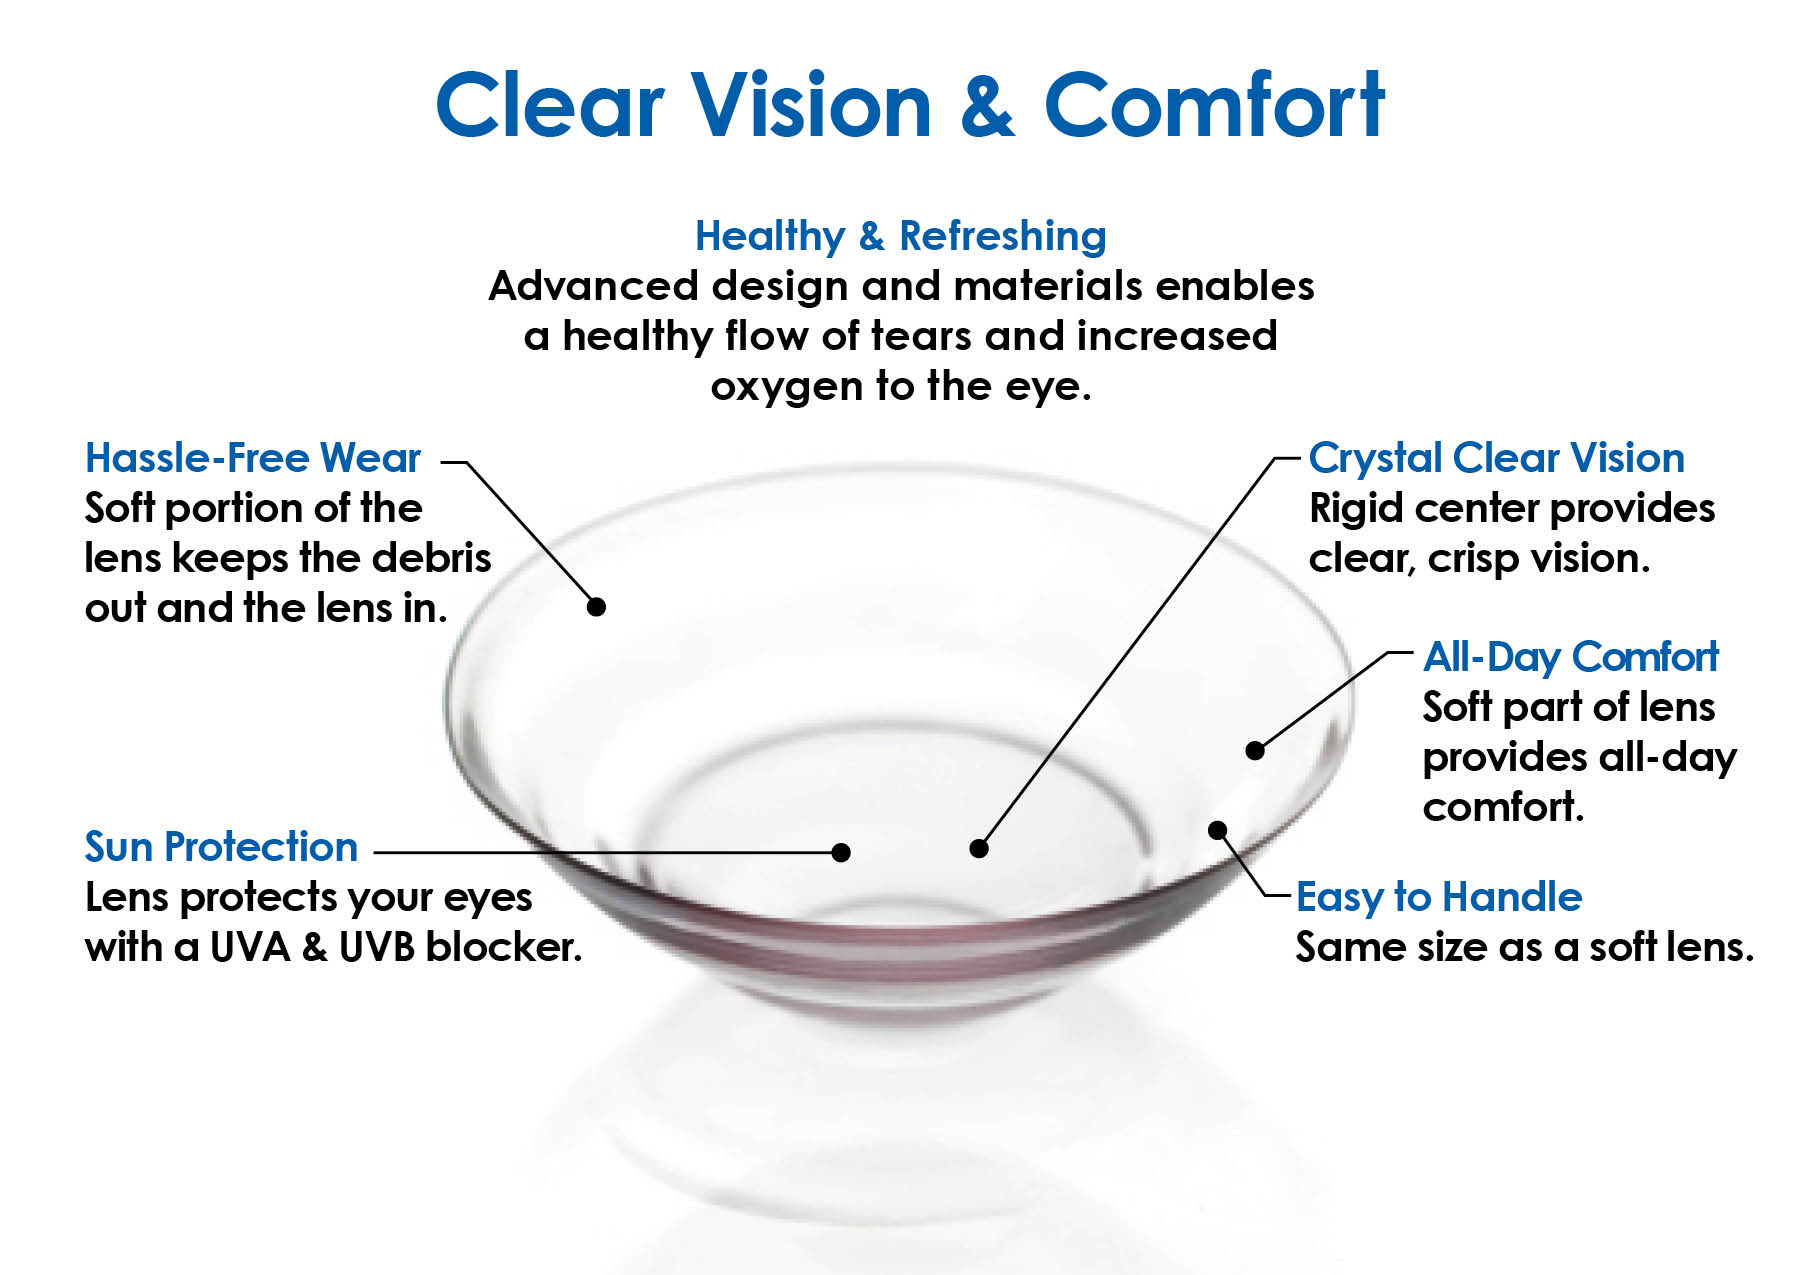 UltraHealth Hybrid Lens Clear Vision and Comfort Graphic